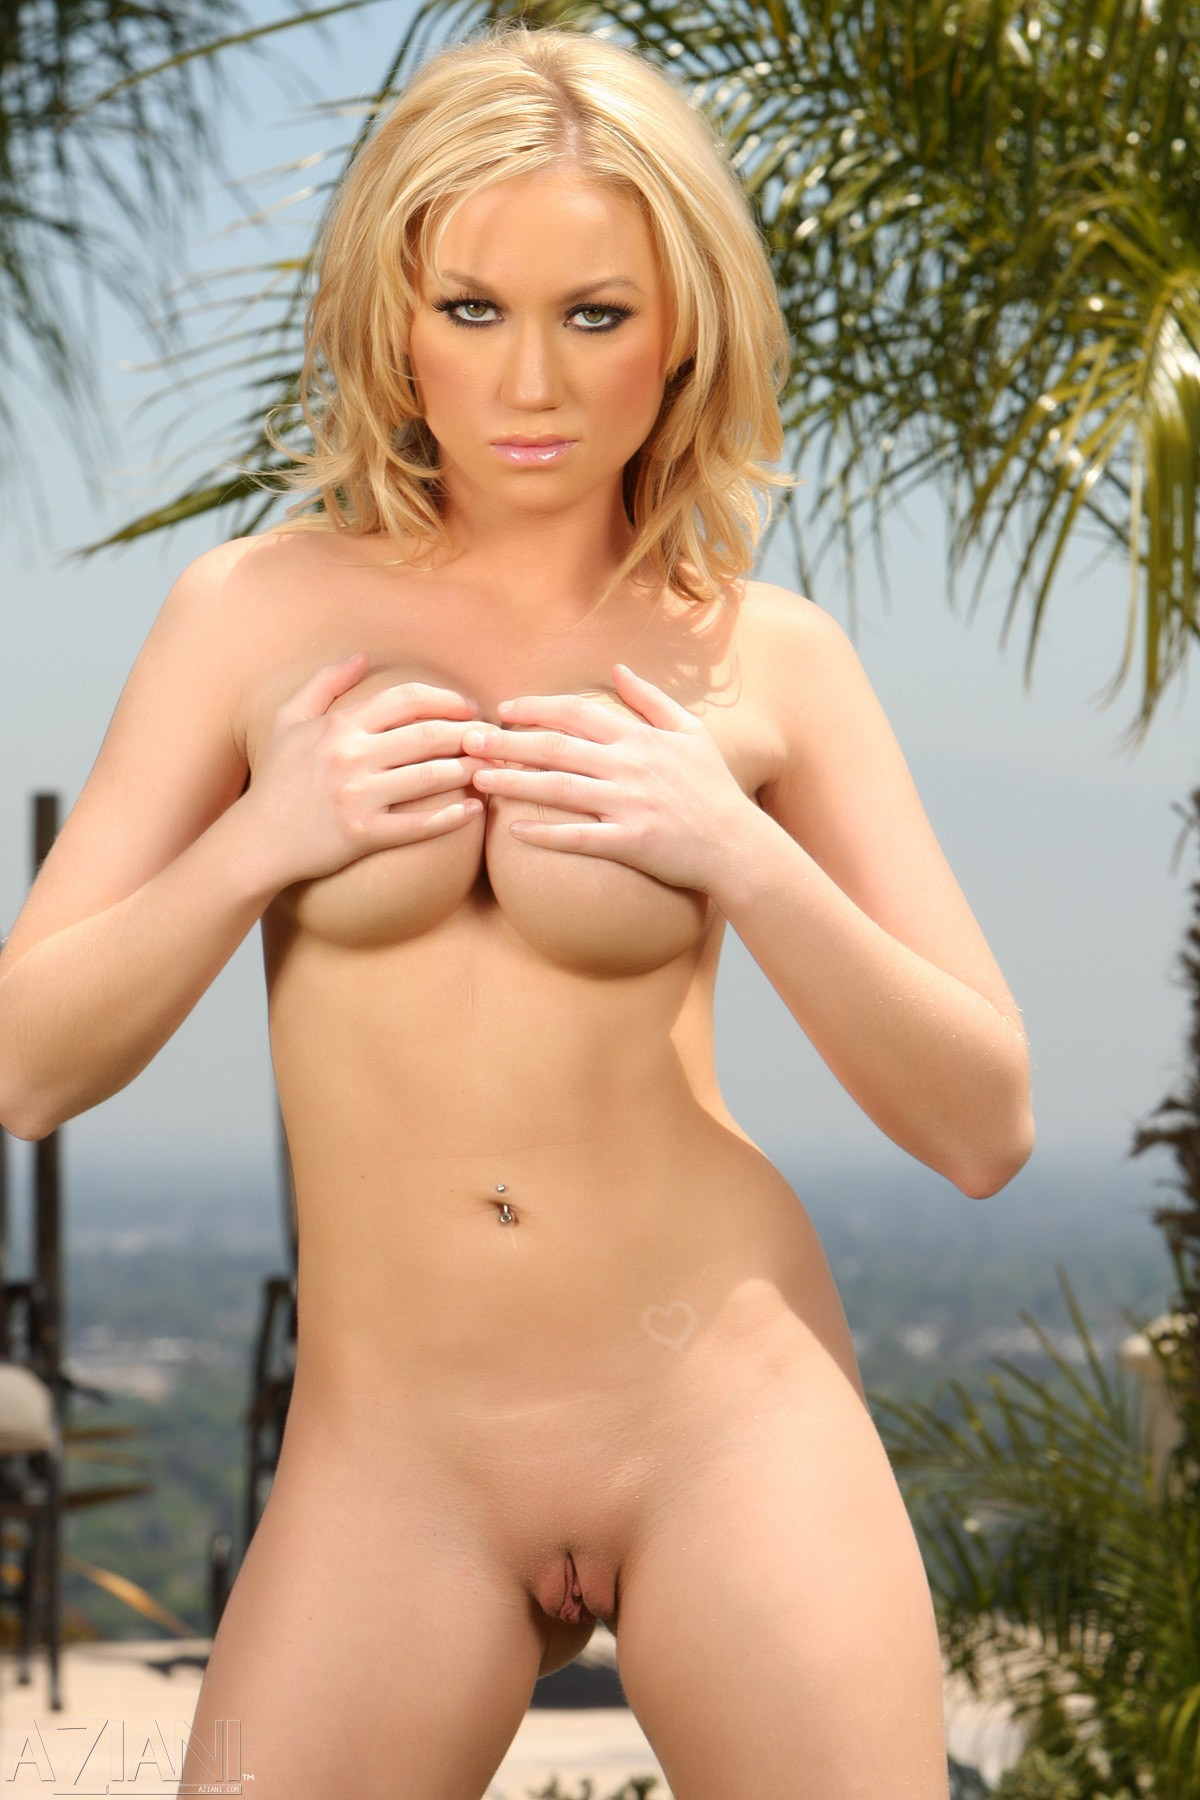 April scott nude galleries final